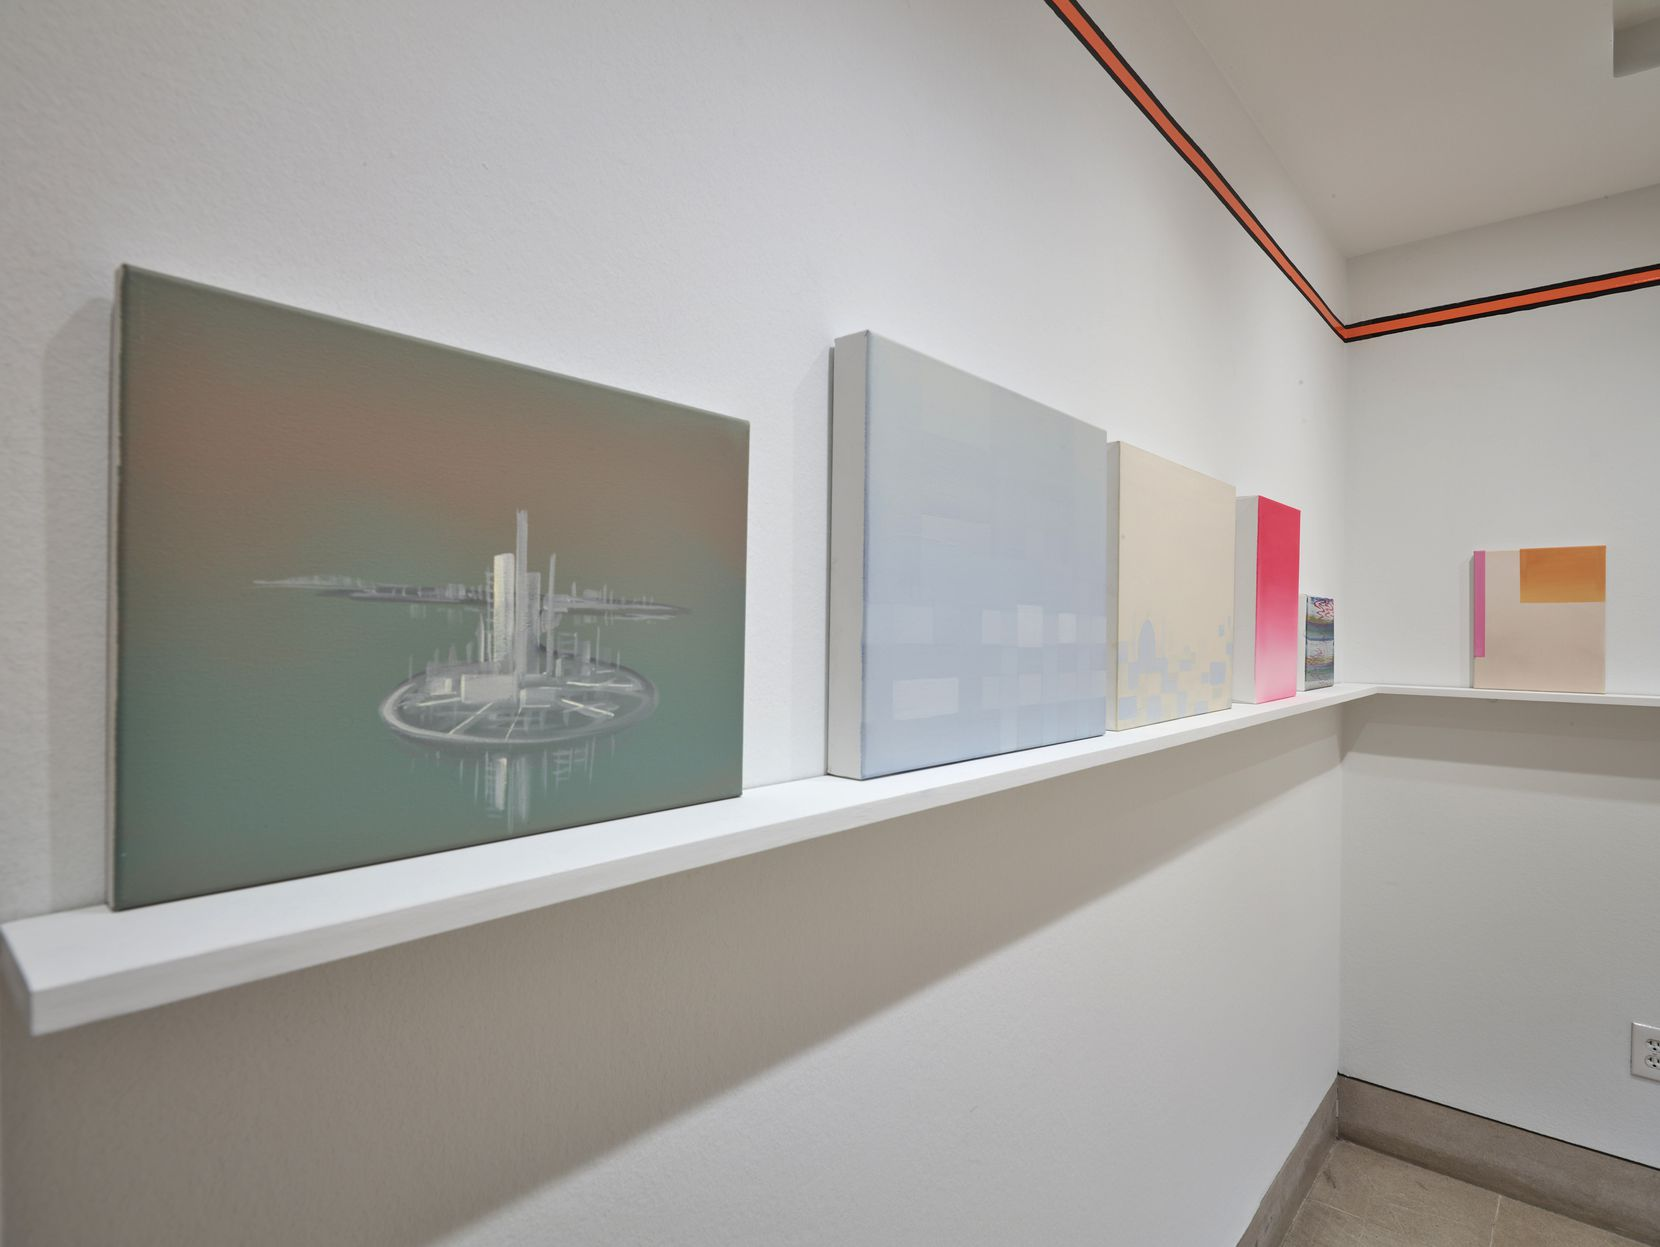 Before entering the main gallery, viewers pass through a smaller room that offers an introduction to Wanda Koop's work with 26 of her smaller, preparatory works perched on a shelf.